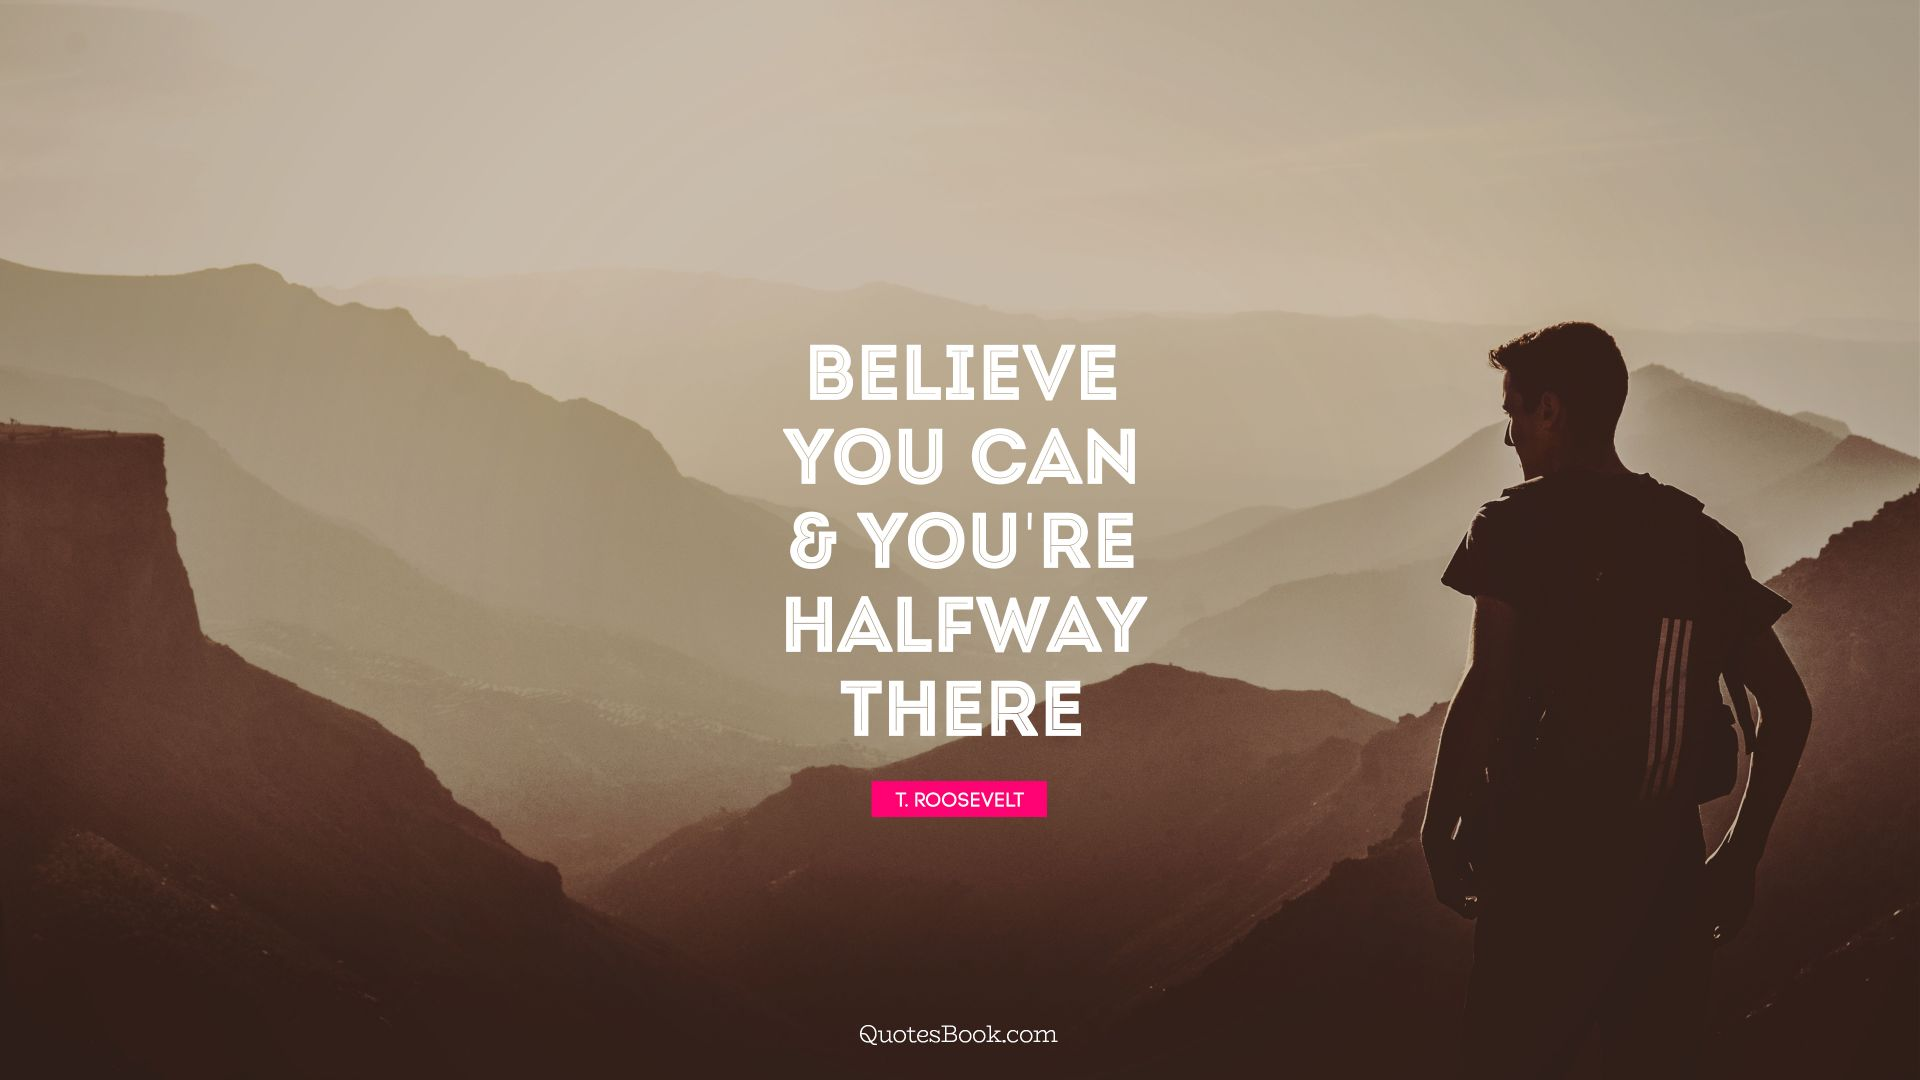 Believe you can & you're halfway there. - Quote by Theodore Roosevelt